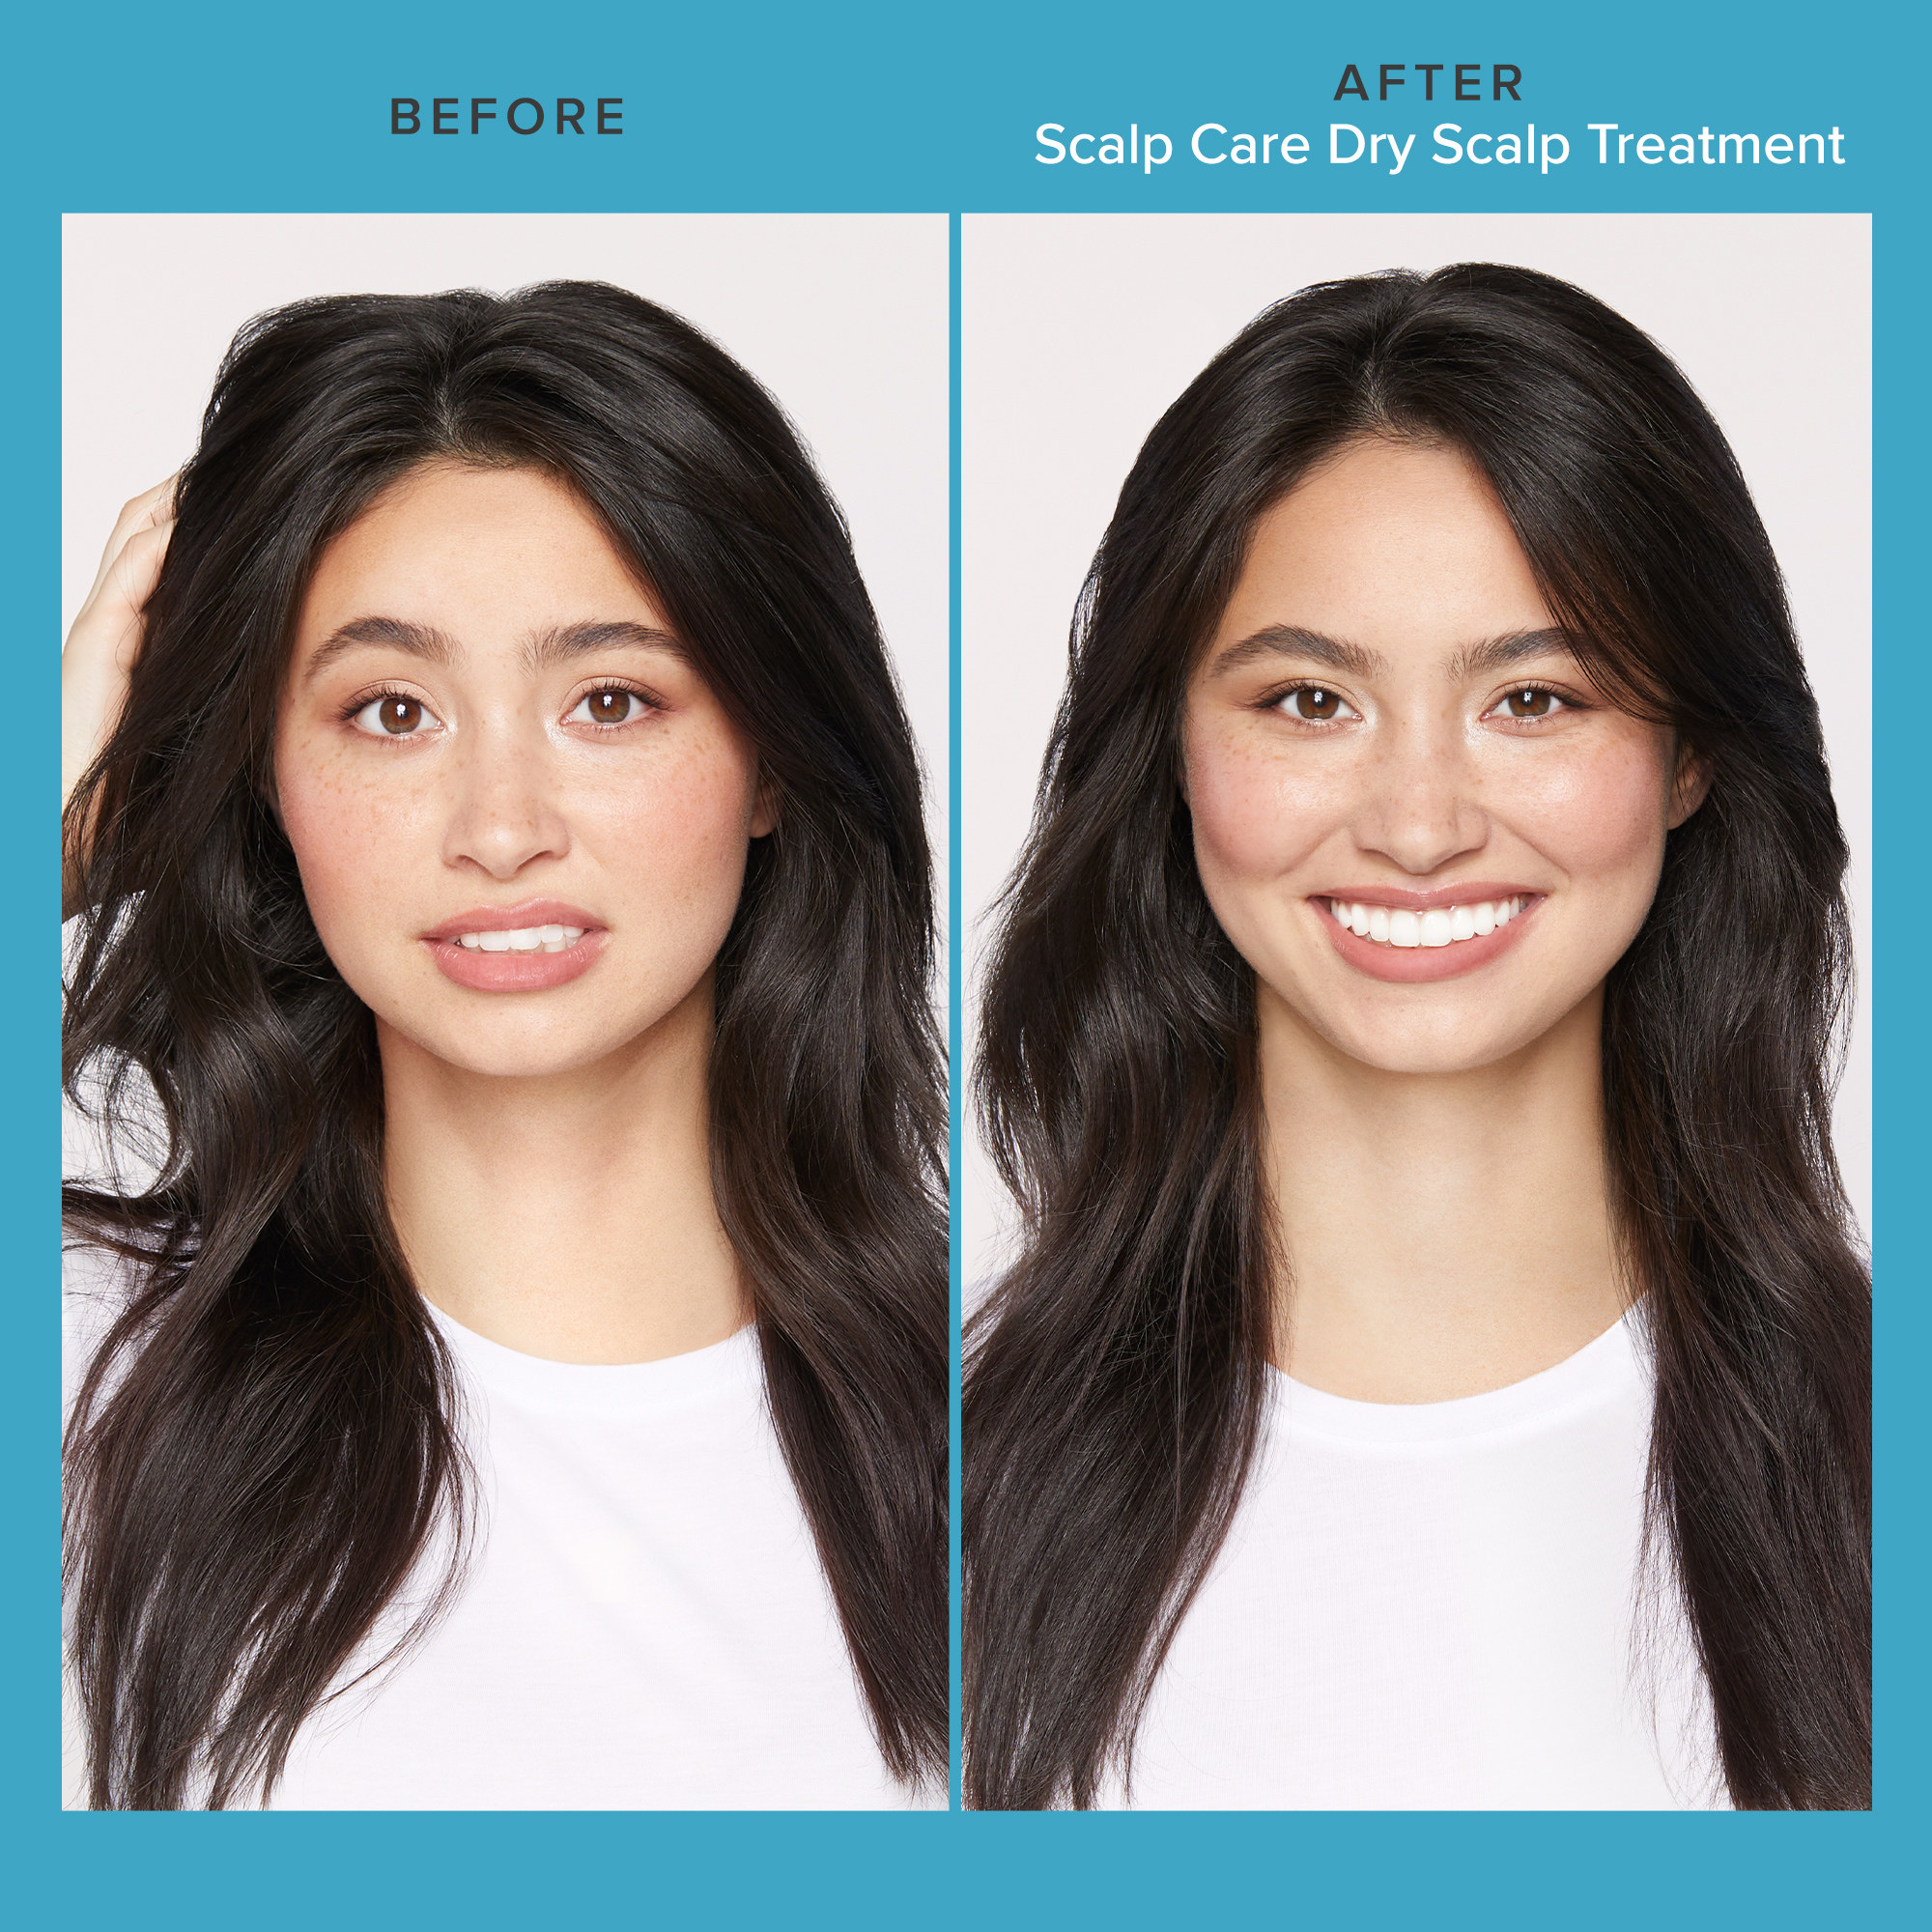 a person with dry hair before the treatment, and a person with smooth hair after the treatment